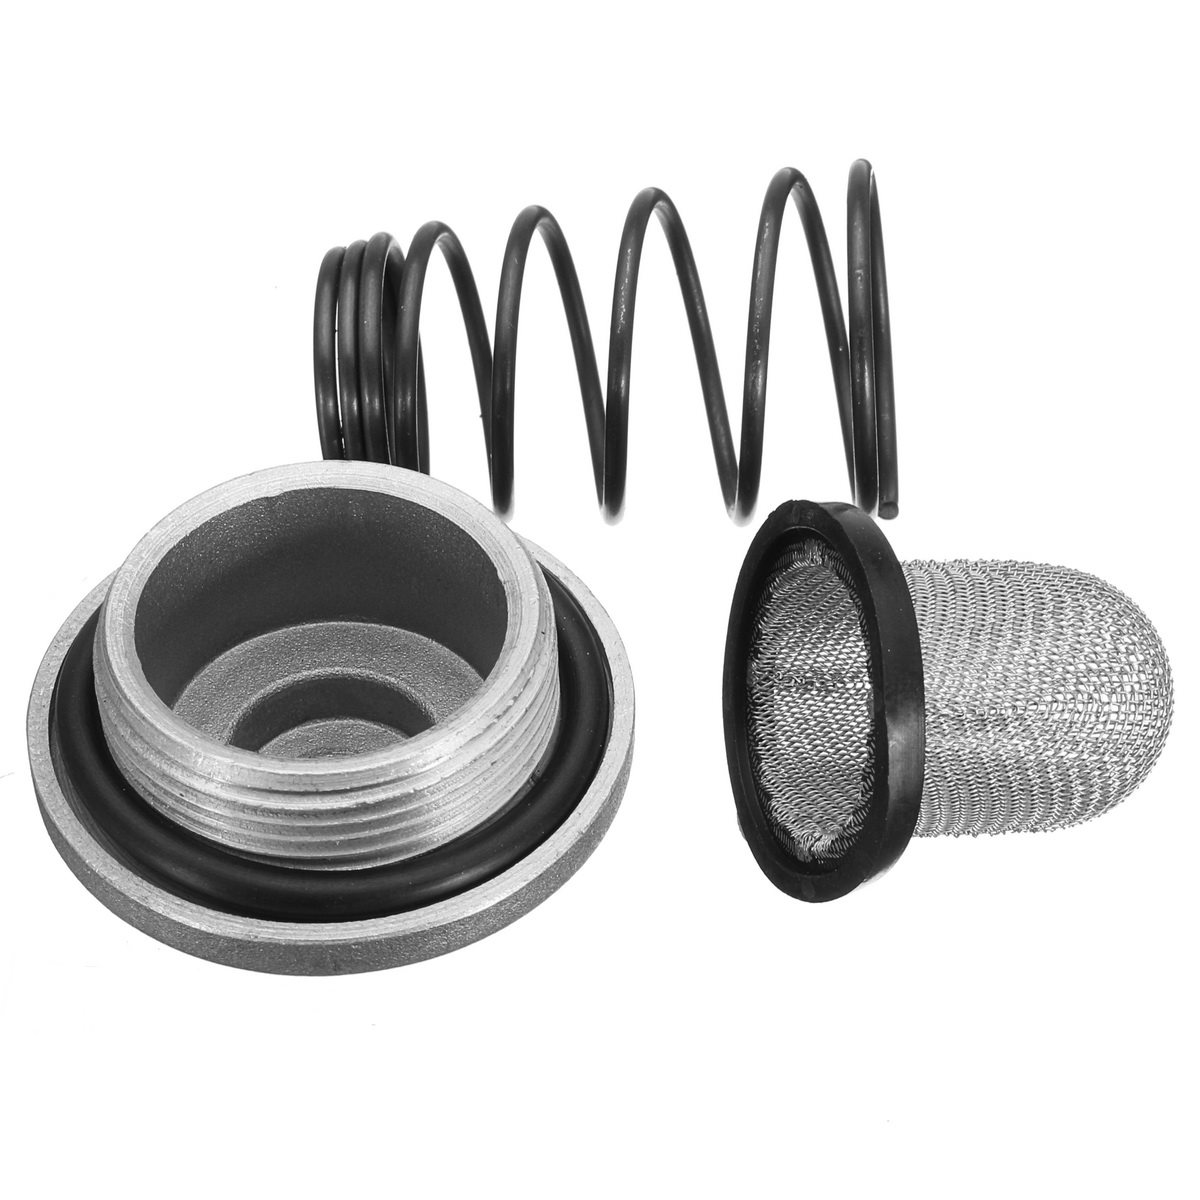 Aluminum & Rubber Motorcycle Scooter Oil Drain Plug Set For 50-150cc GY6 Baotian Benzhou Znen Taotao